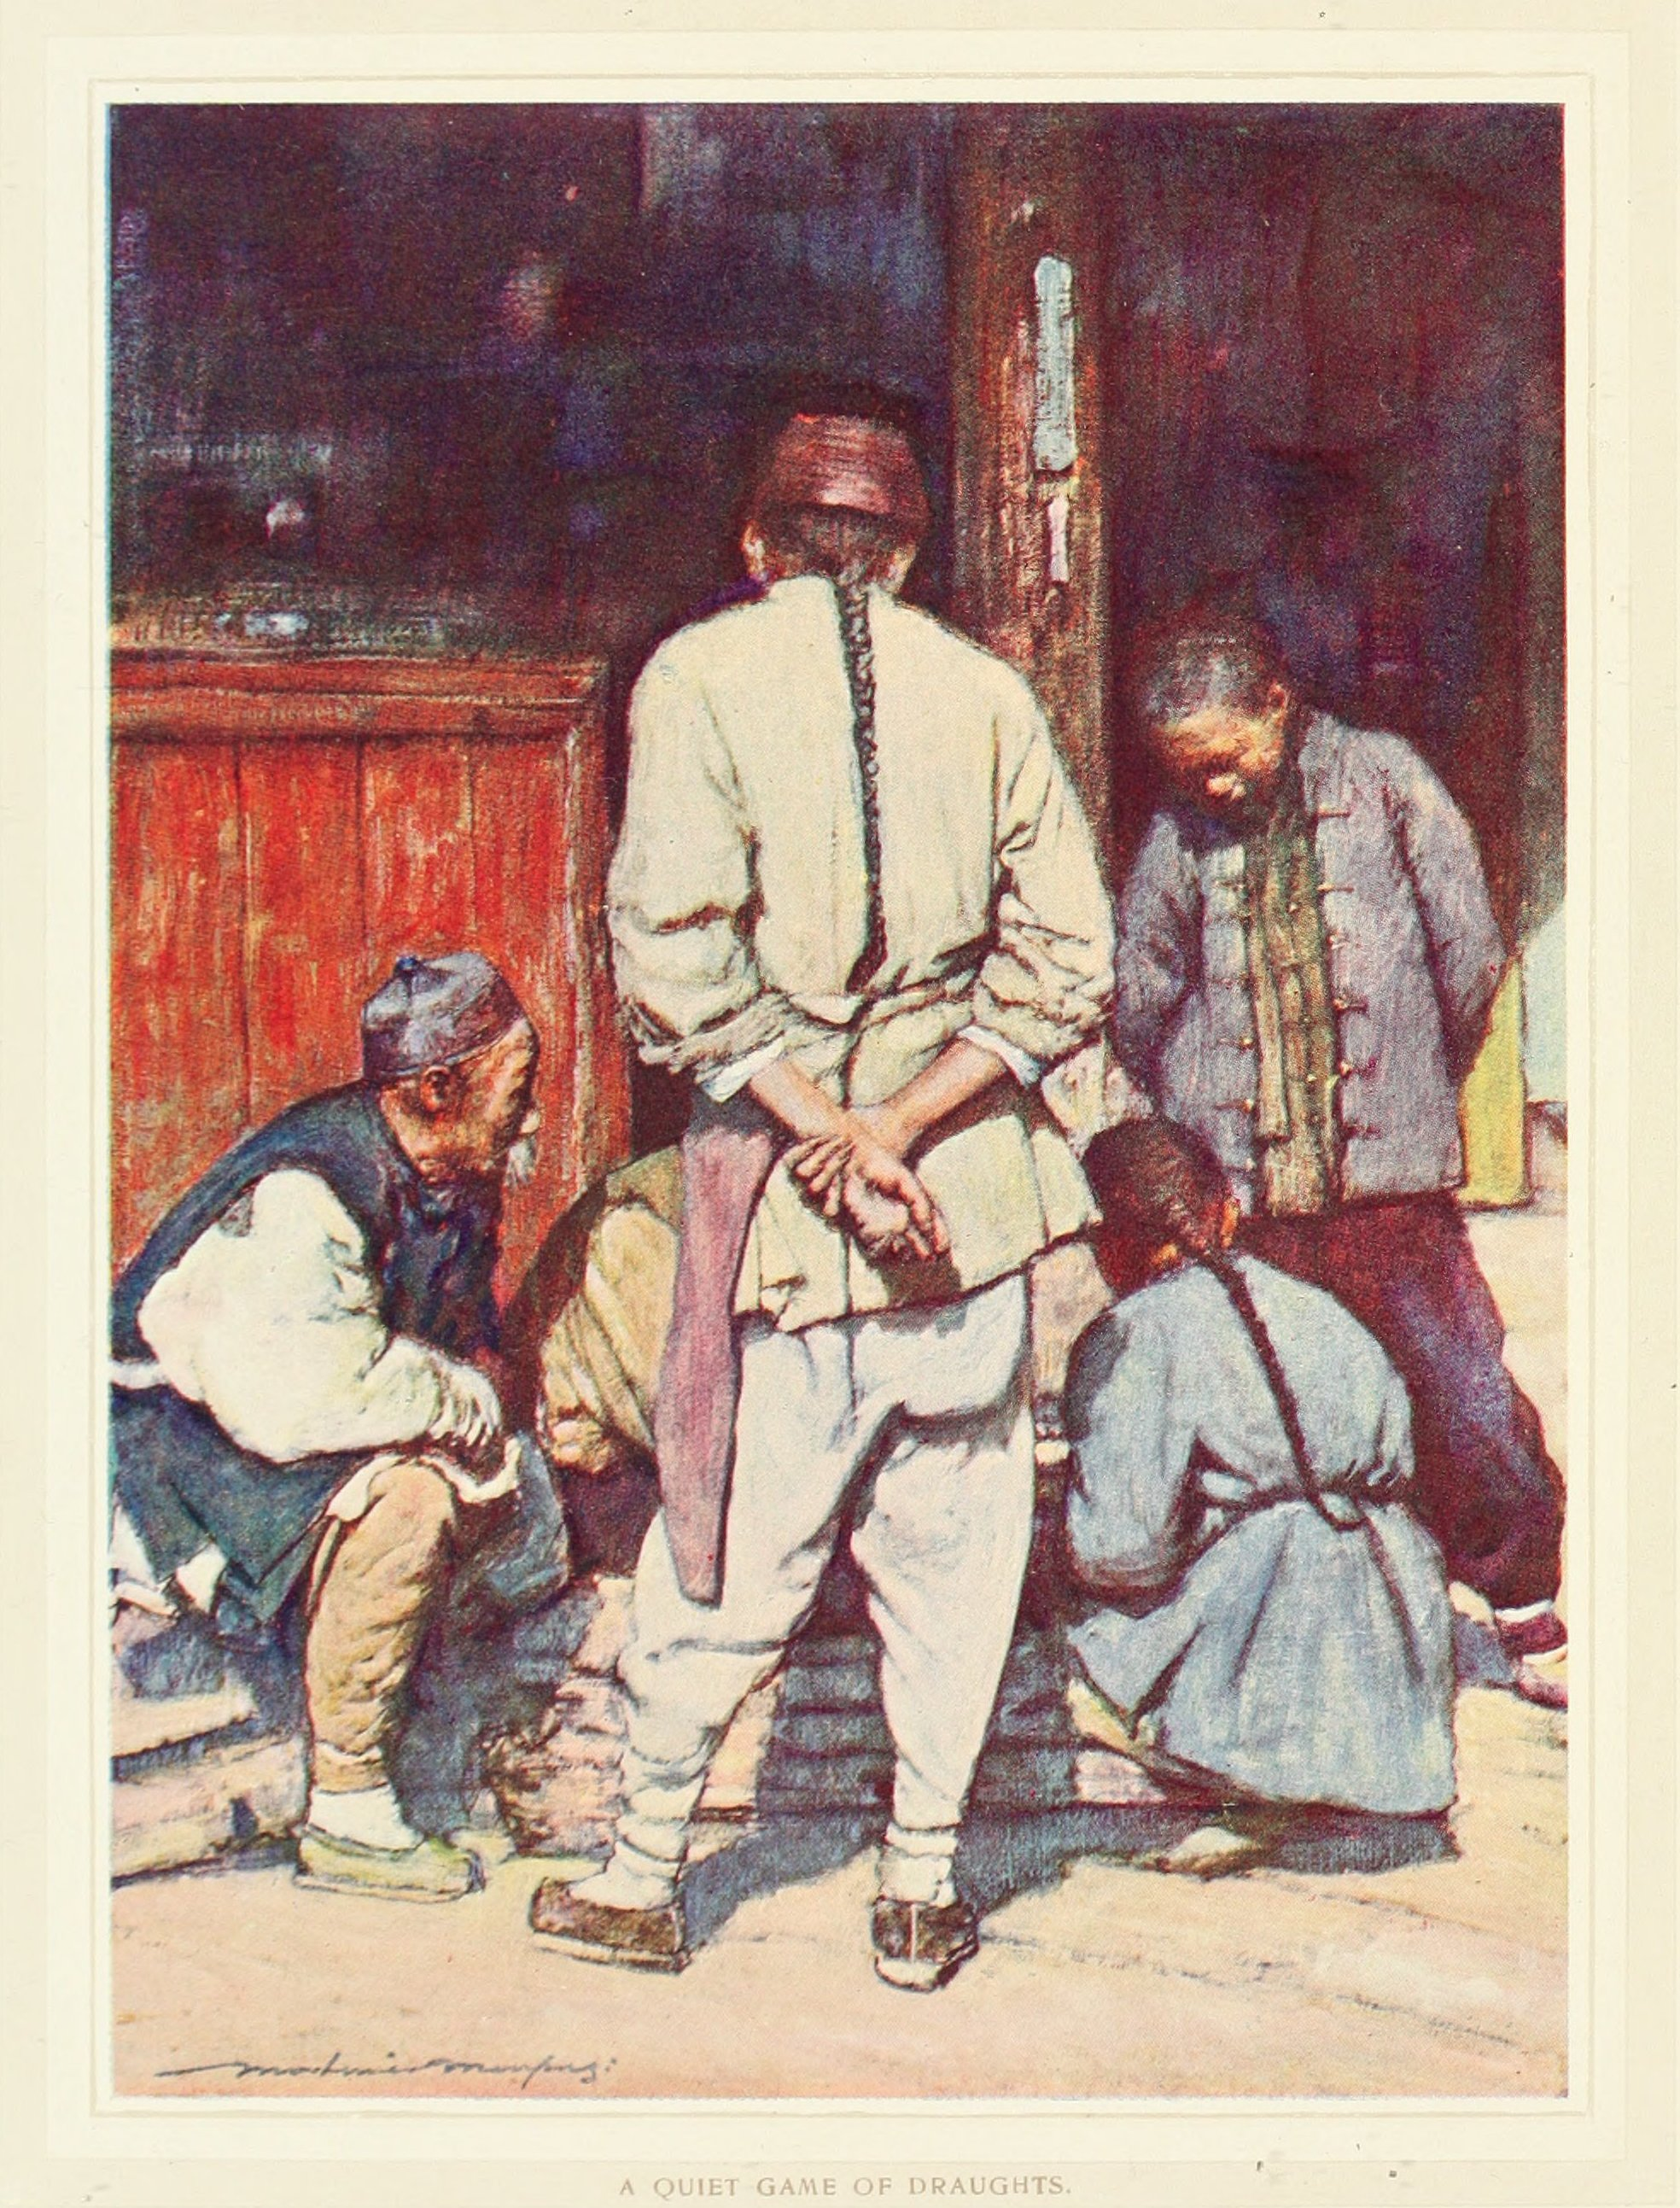 China11.A Quiet Game of Draughts.看下象棋.jpg